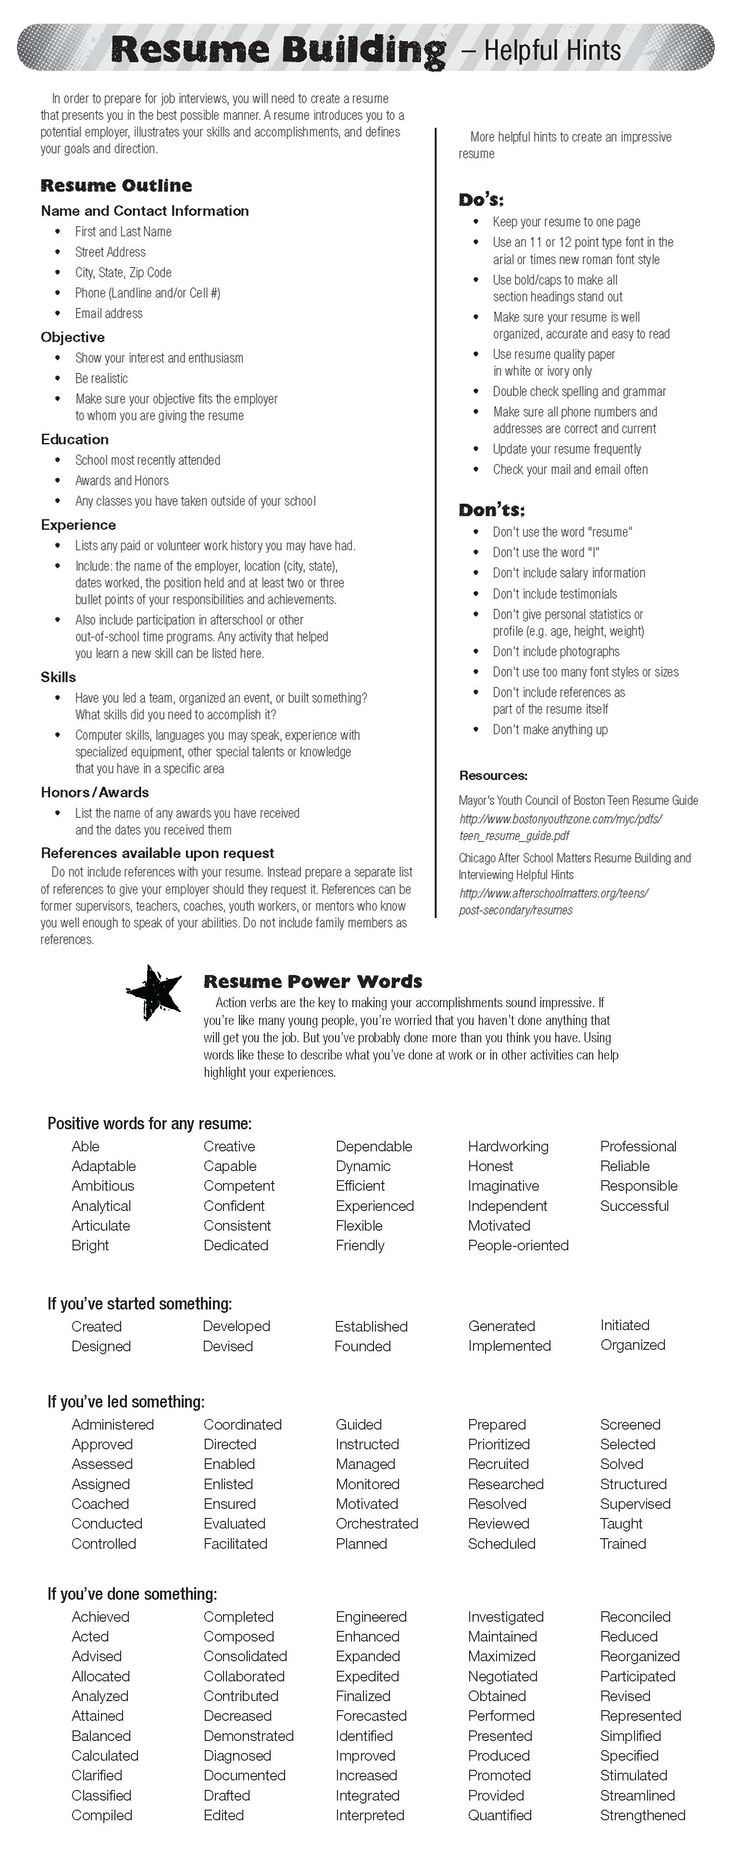 Opposenewapstandardsus  Unique  Ideas About Resume On Pinterest  Cv Format Resume Cv And  With Fascinating  Ideas About Resume On Pinterest  Cv Format Resume Cv And Resume Templates With Delectable Put Gpa On Resume Also How To Email Your Resume In Addition Resume Nurse And Web Developer Resume Sample As Well As Best Resume Layouts Additionally How To Do A Resume Free From Pinterestcom With Opposenewapstandardsus  Fascinating  Ideas About Resume On Pinterest  Cv Format Resume Cv And  With Delectable  Ideas About Resume On Pinterest  Cv Format Resume Cv And Resume Templates And Unique Put Gpa On Resume Also How To Email Your Resume In Addition Resume Nurse From Pinterestcom